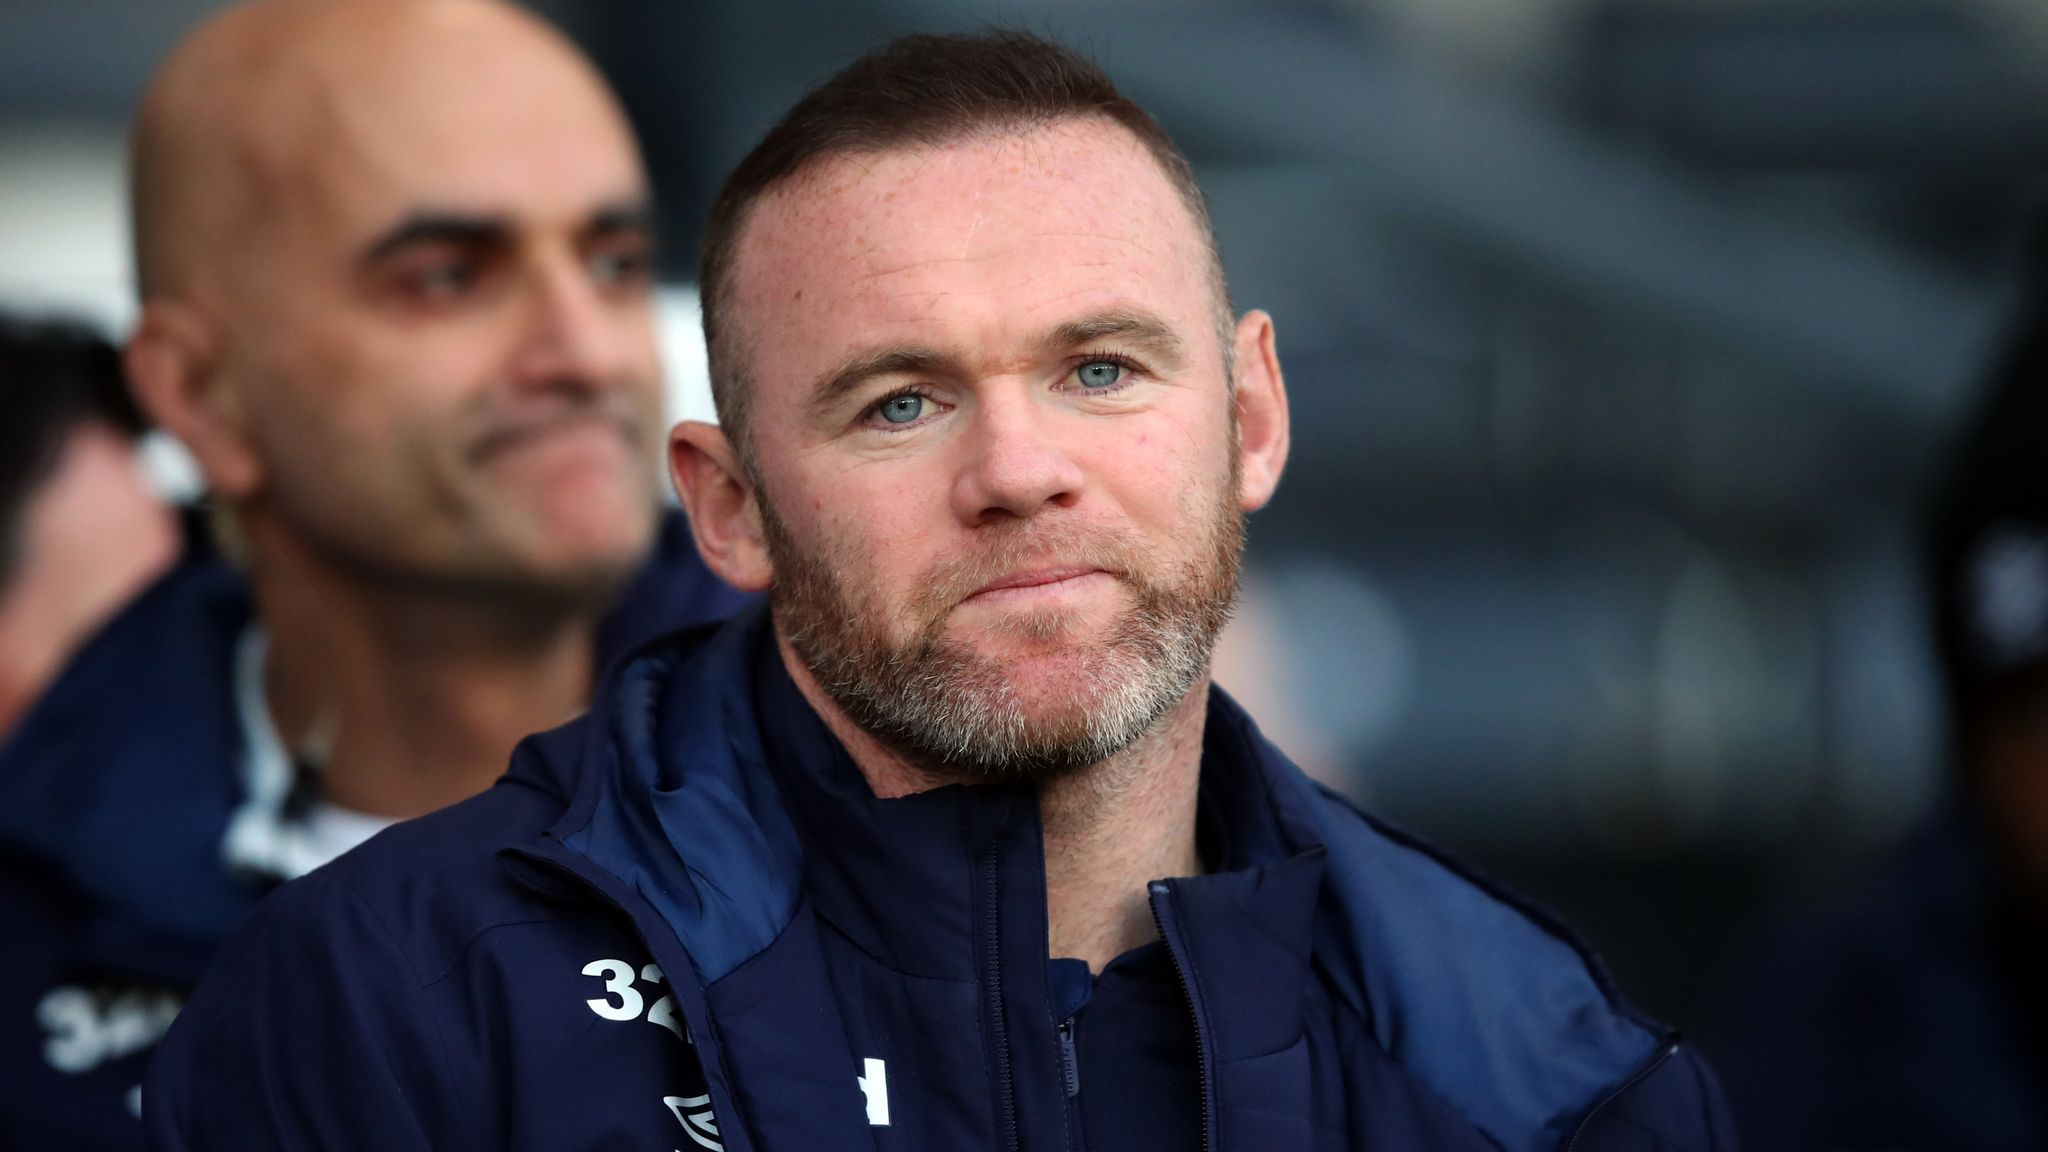 Wayne Rooney says he can still cut it in Premier League